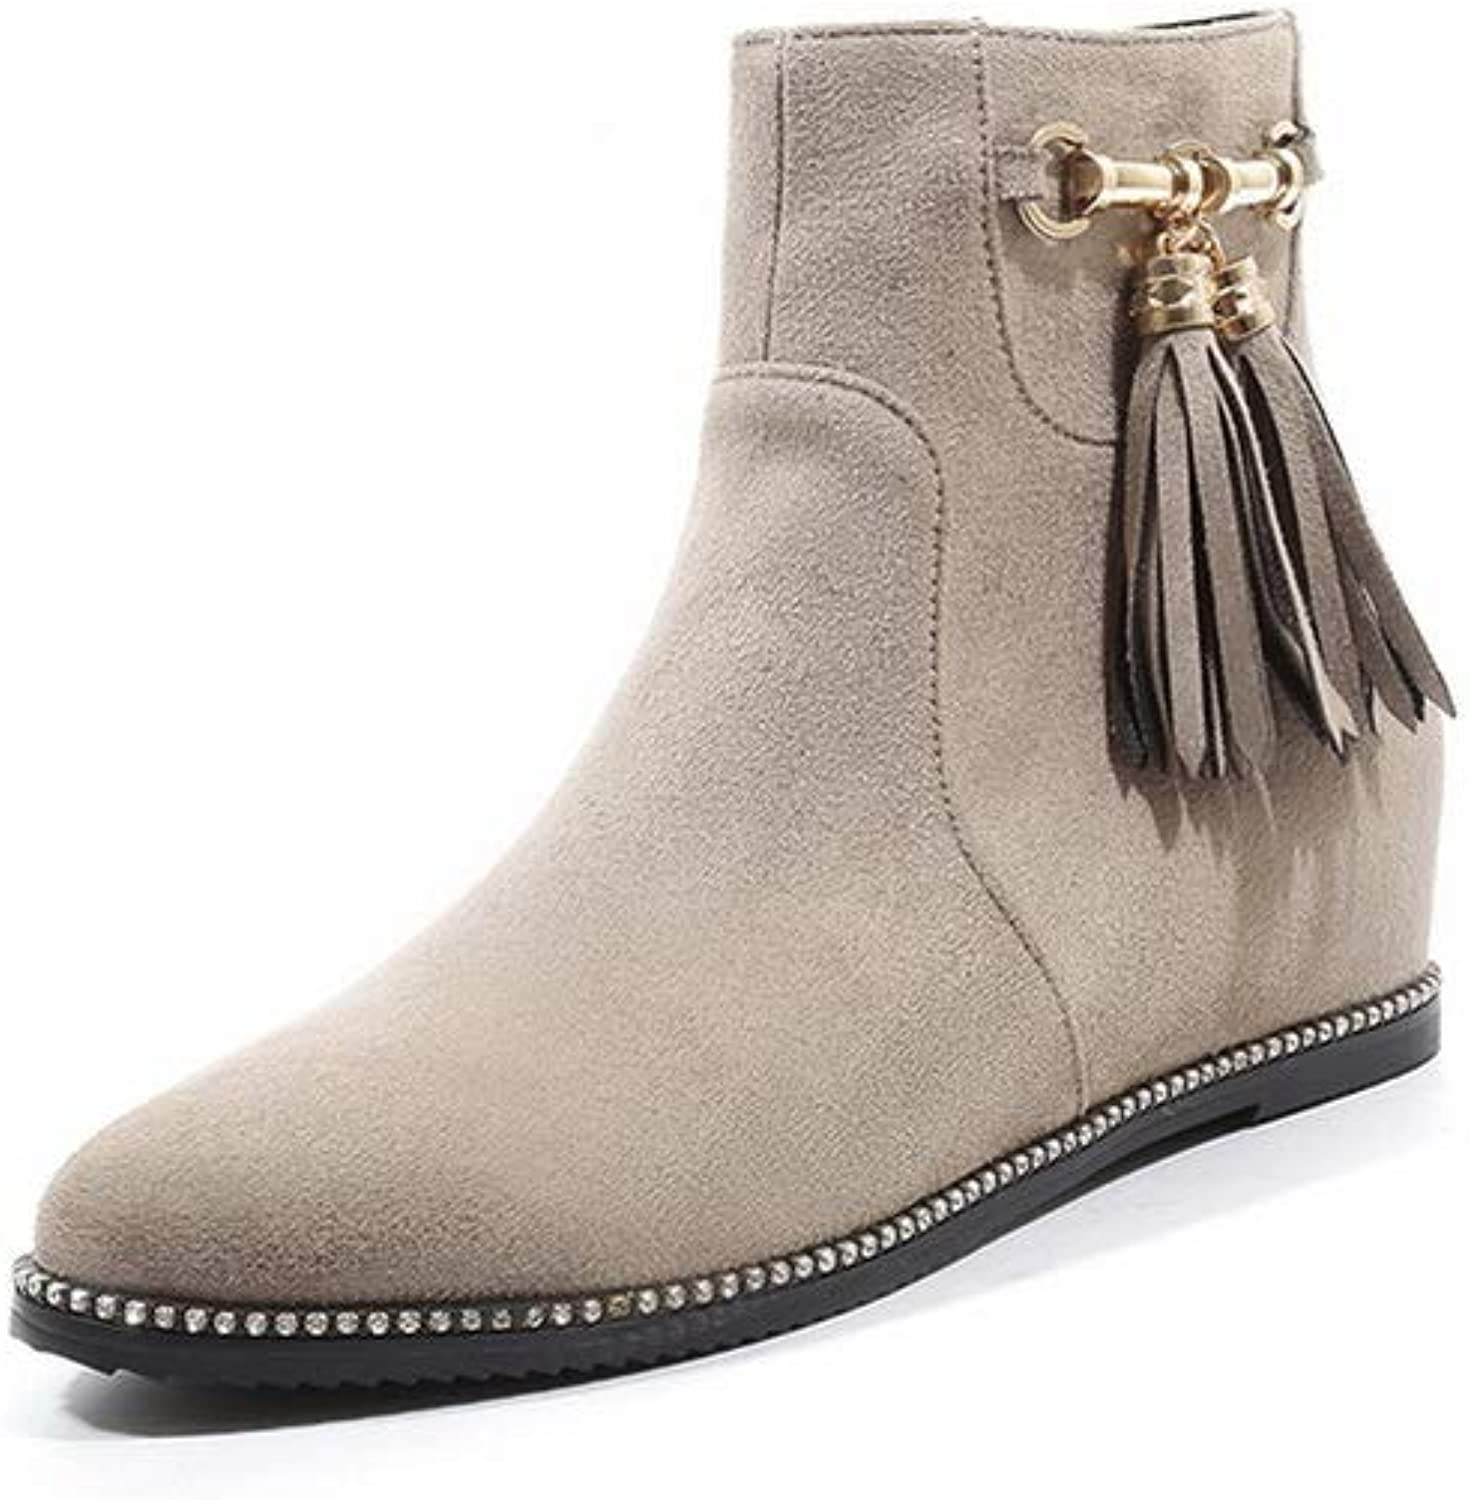 1TO9 Womens Nubuck Fringed High-Heel Urethane Boots MNS03416